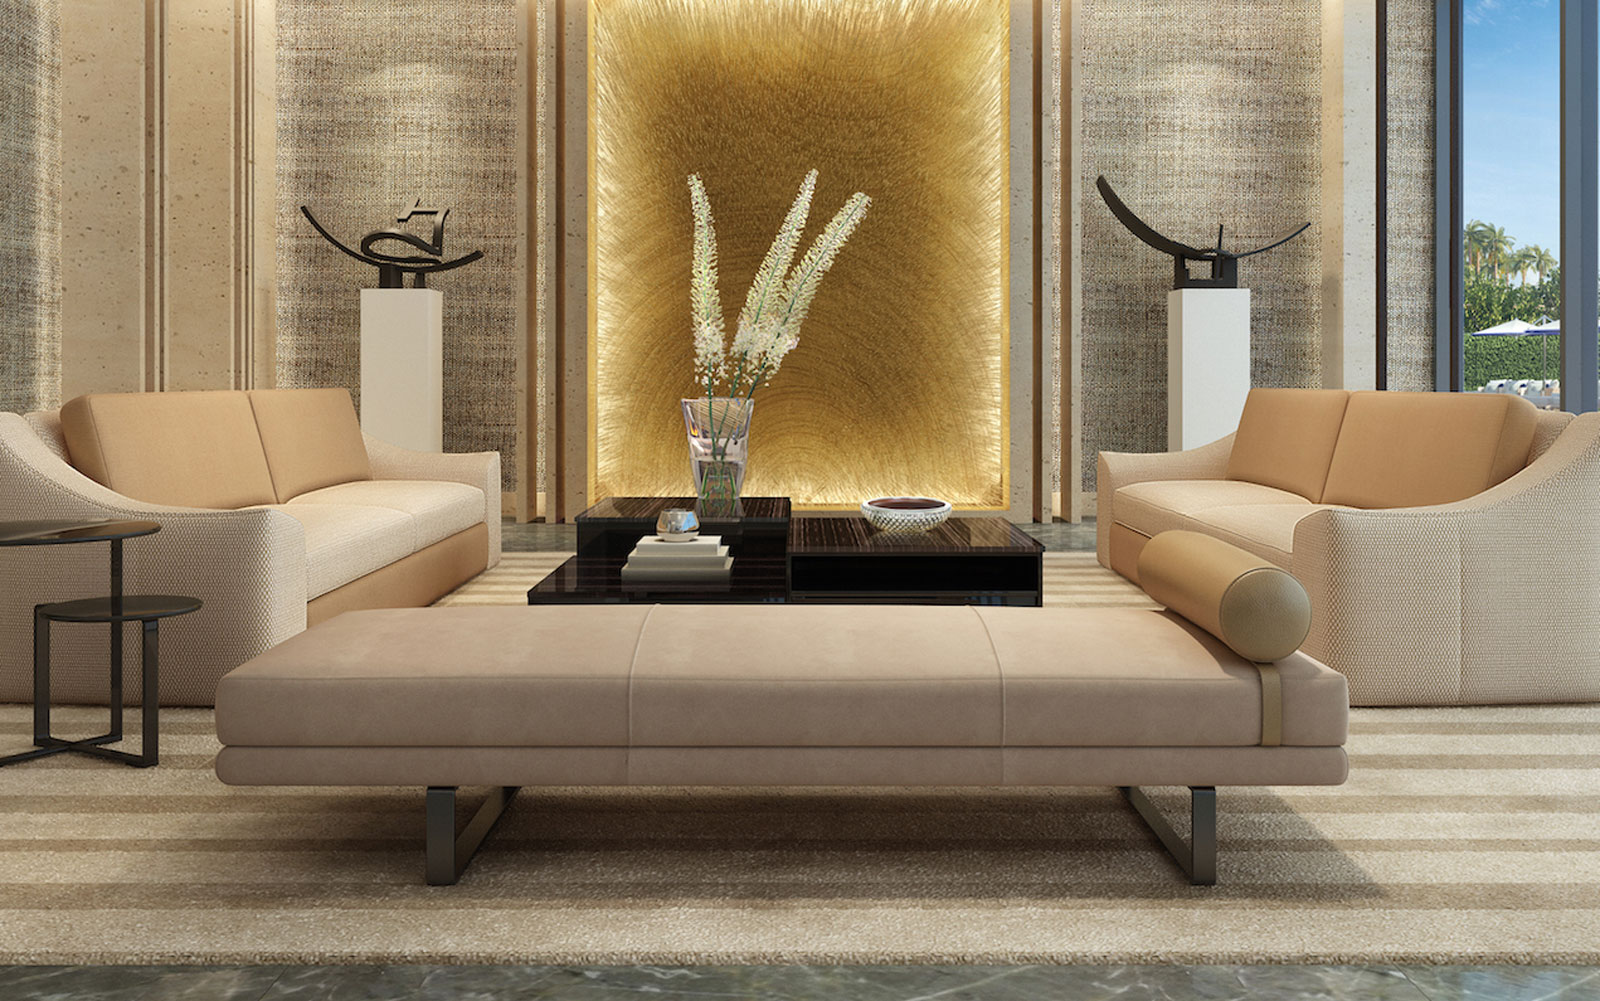 couches-FENDI0816.jpg